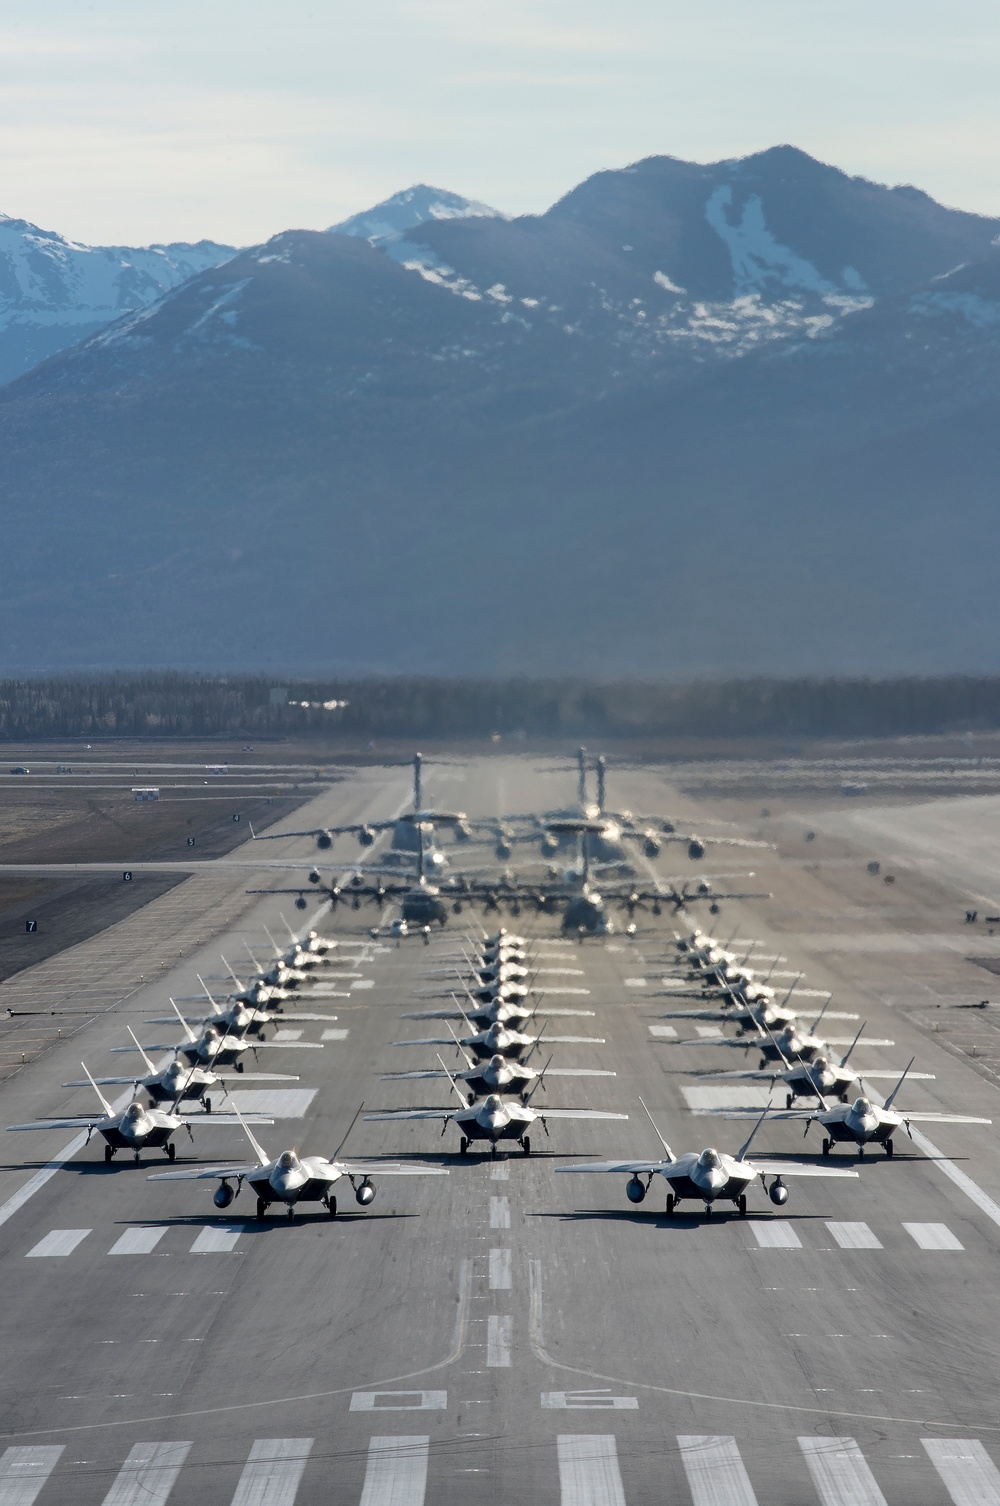 Airpower demo showcases mission readiness, total force integration